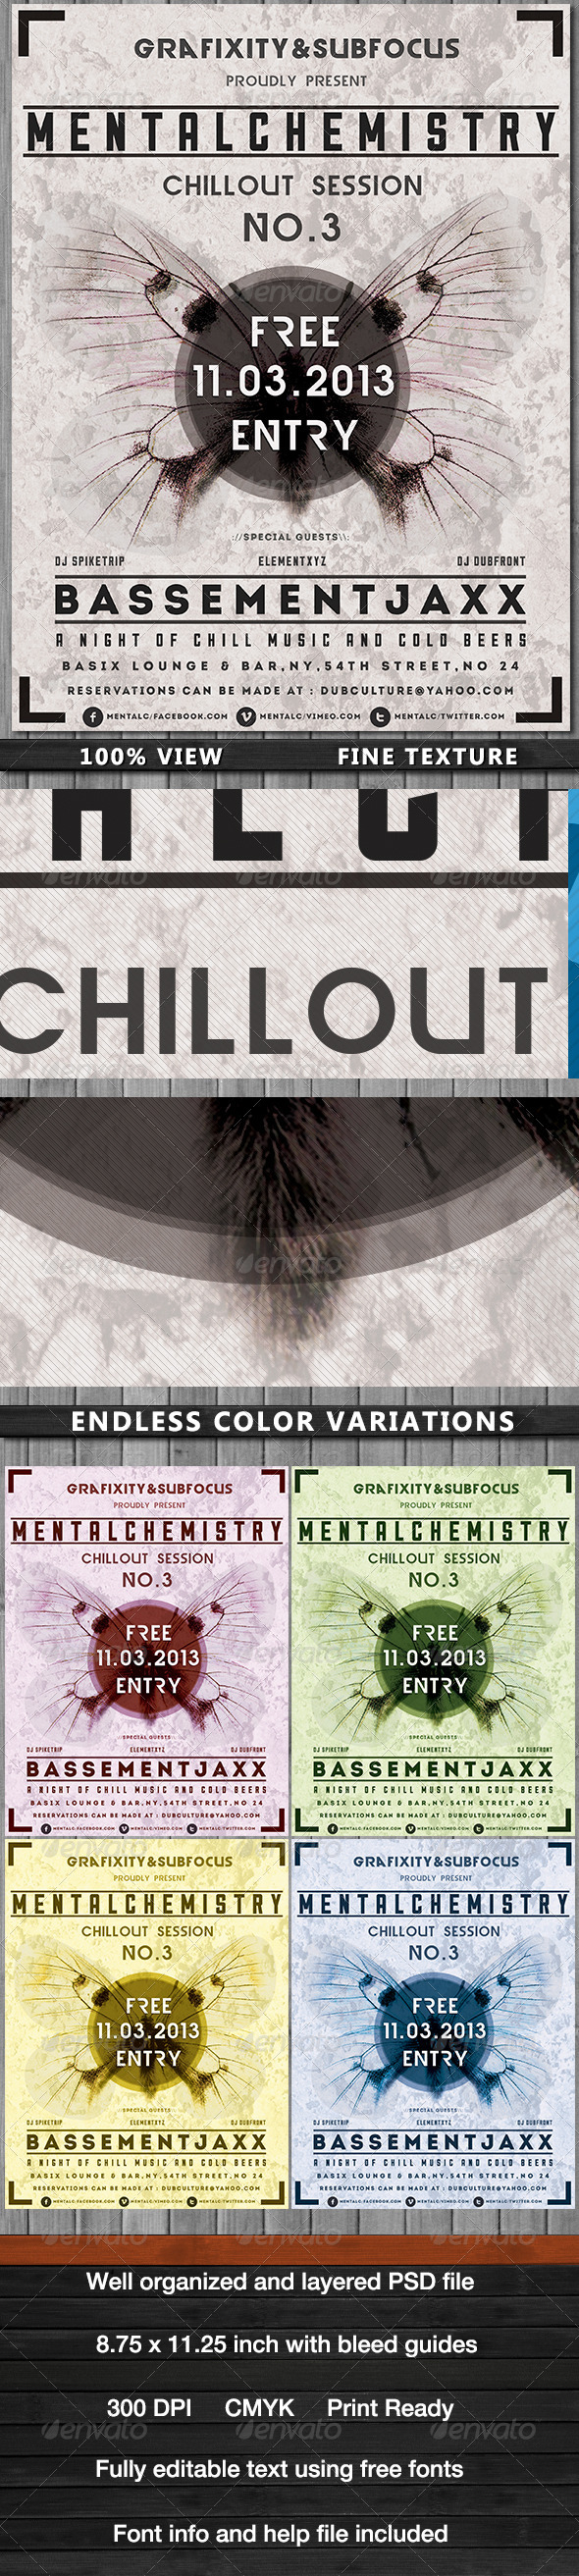 GraphicRiver MentalChemistry-Chillout Dub Poster 4021656